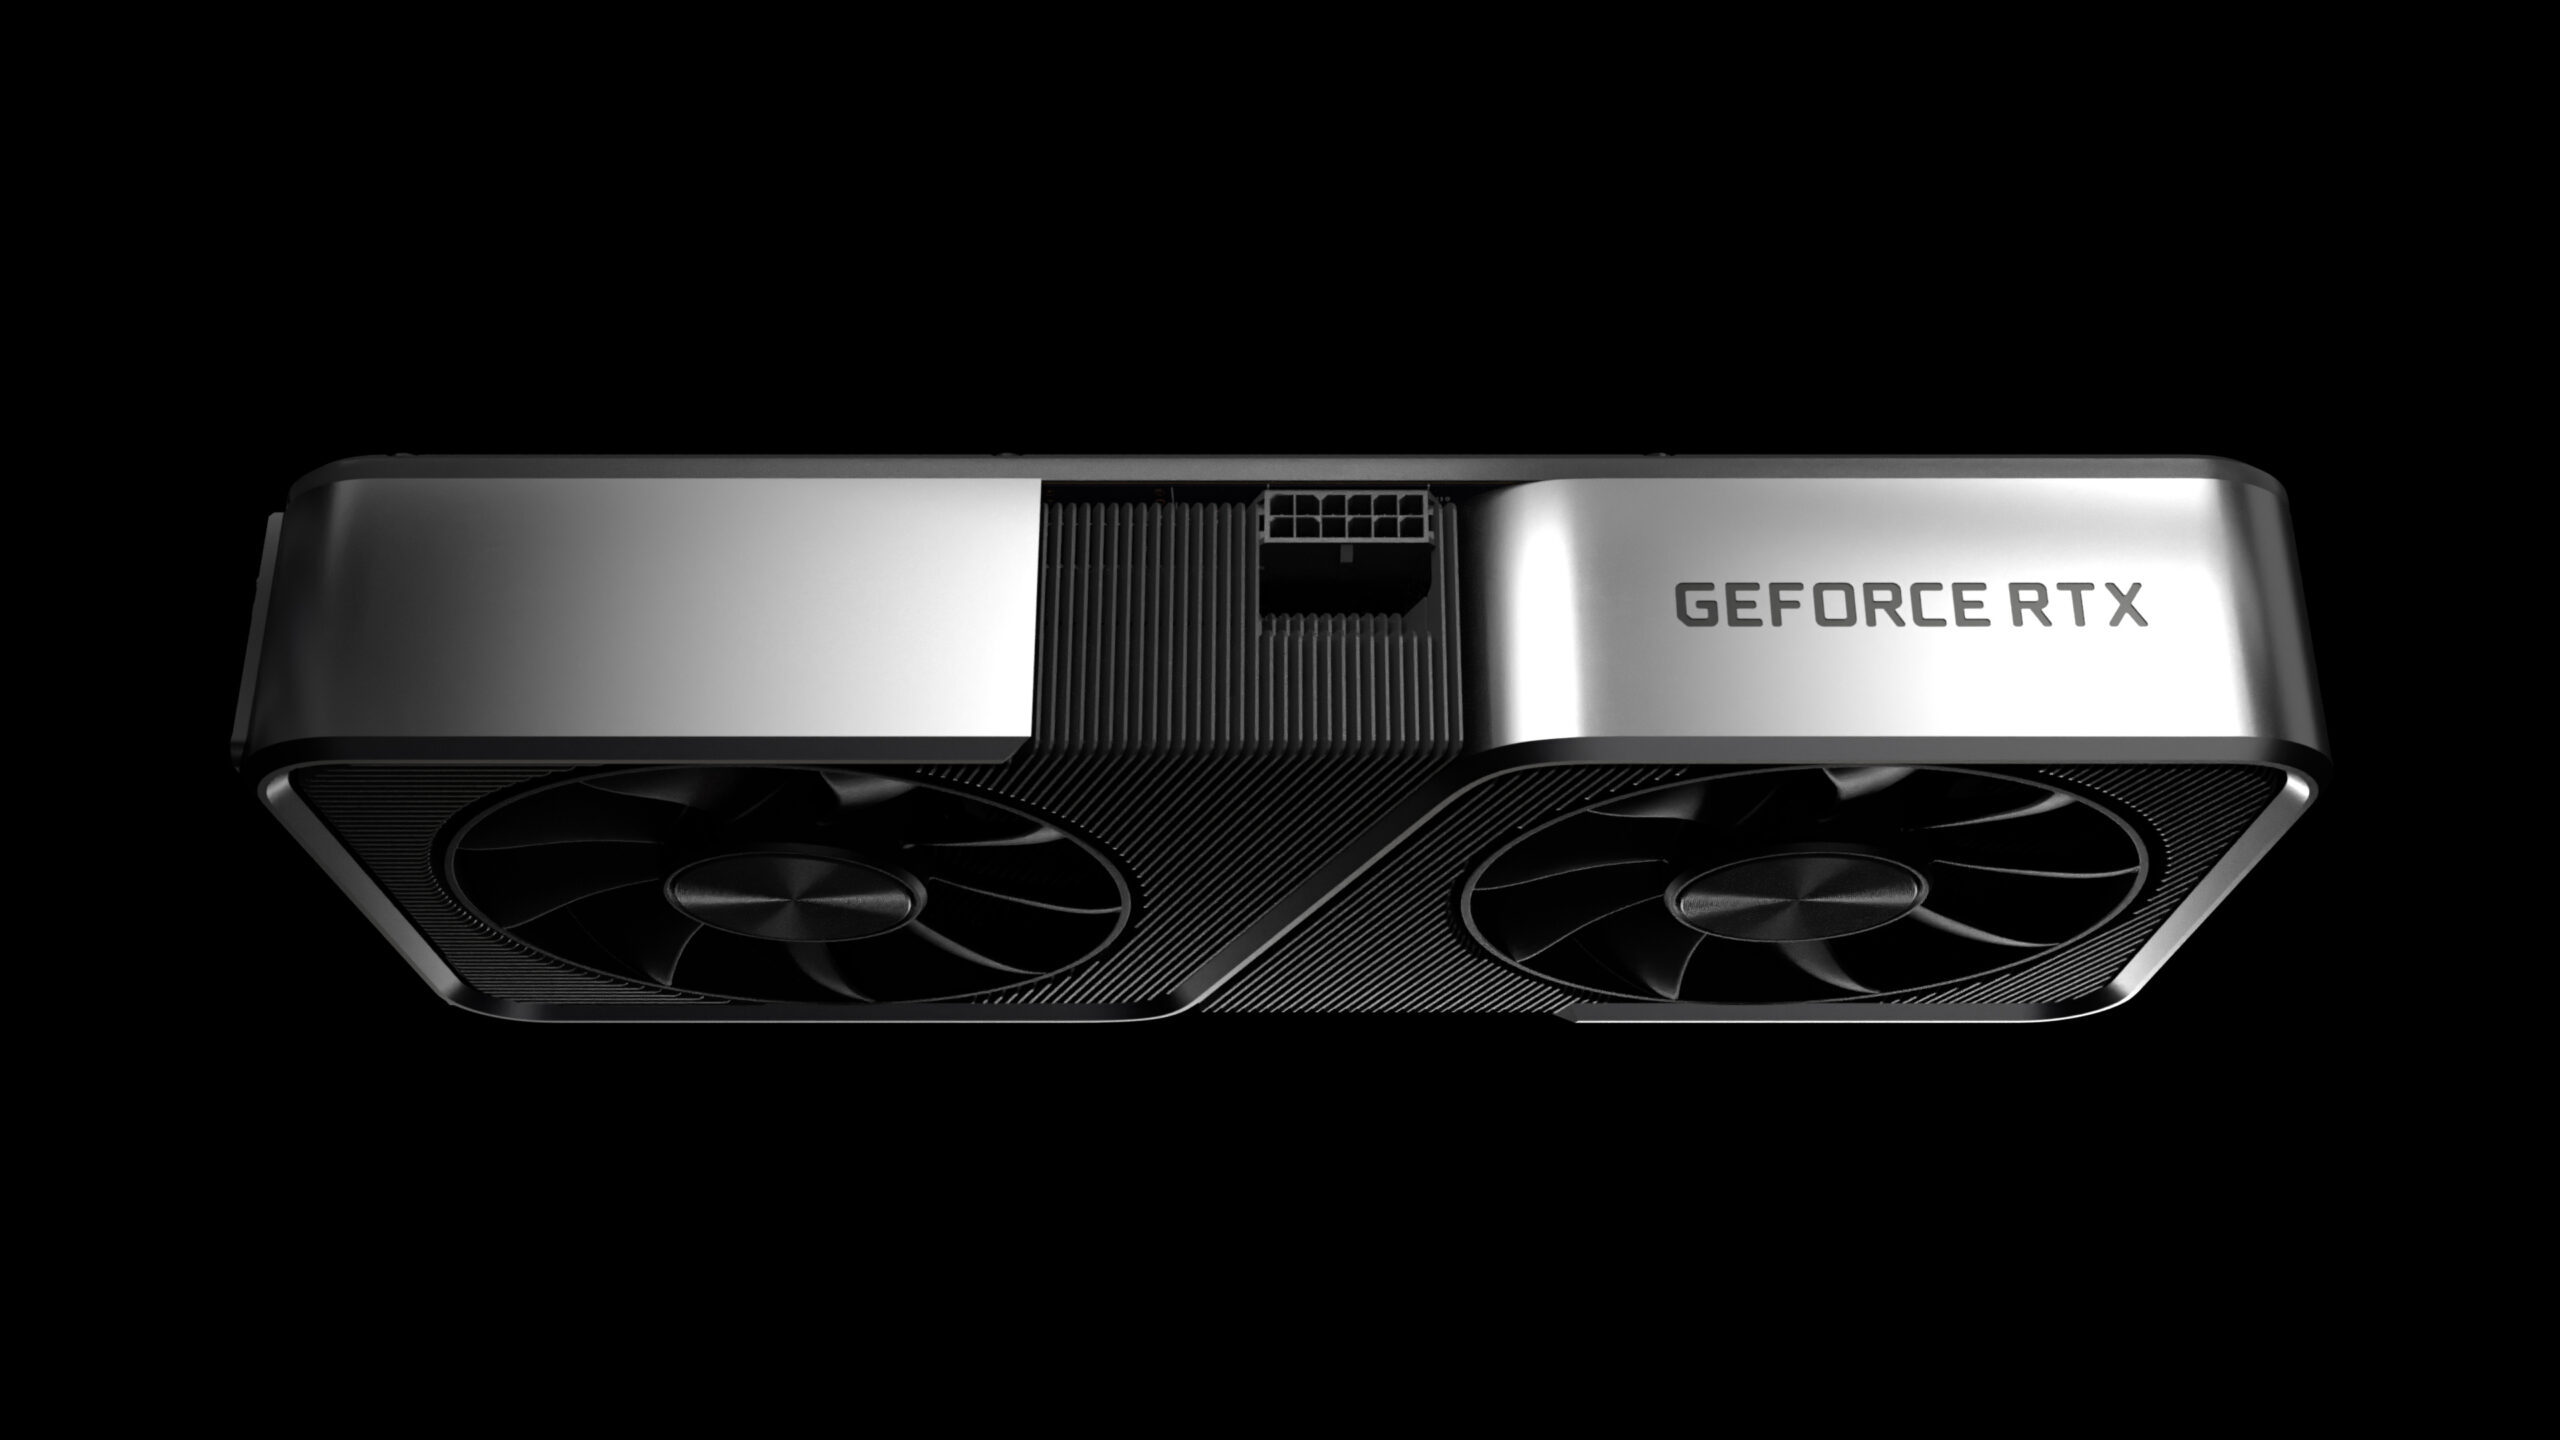 Leaked Nvidia Geforce Rtx 3060 Ti Benchmarks Suggest Superiority Over The Rtx 2080 Super At Under 60 Of The Price Notebookcheck Net News